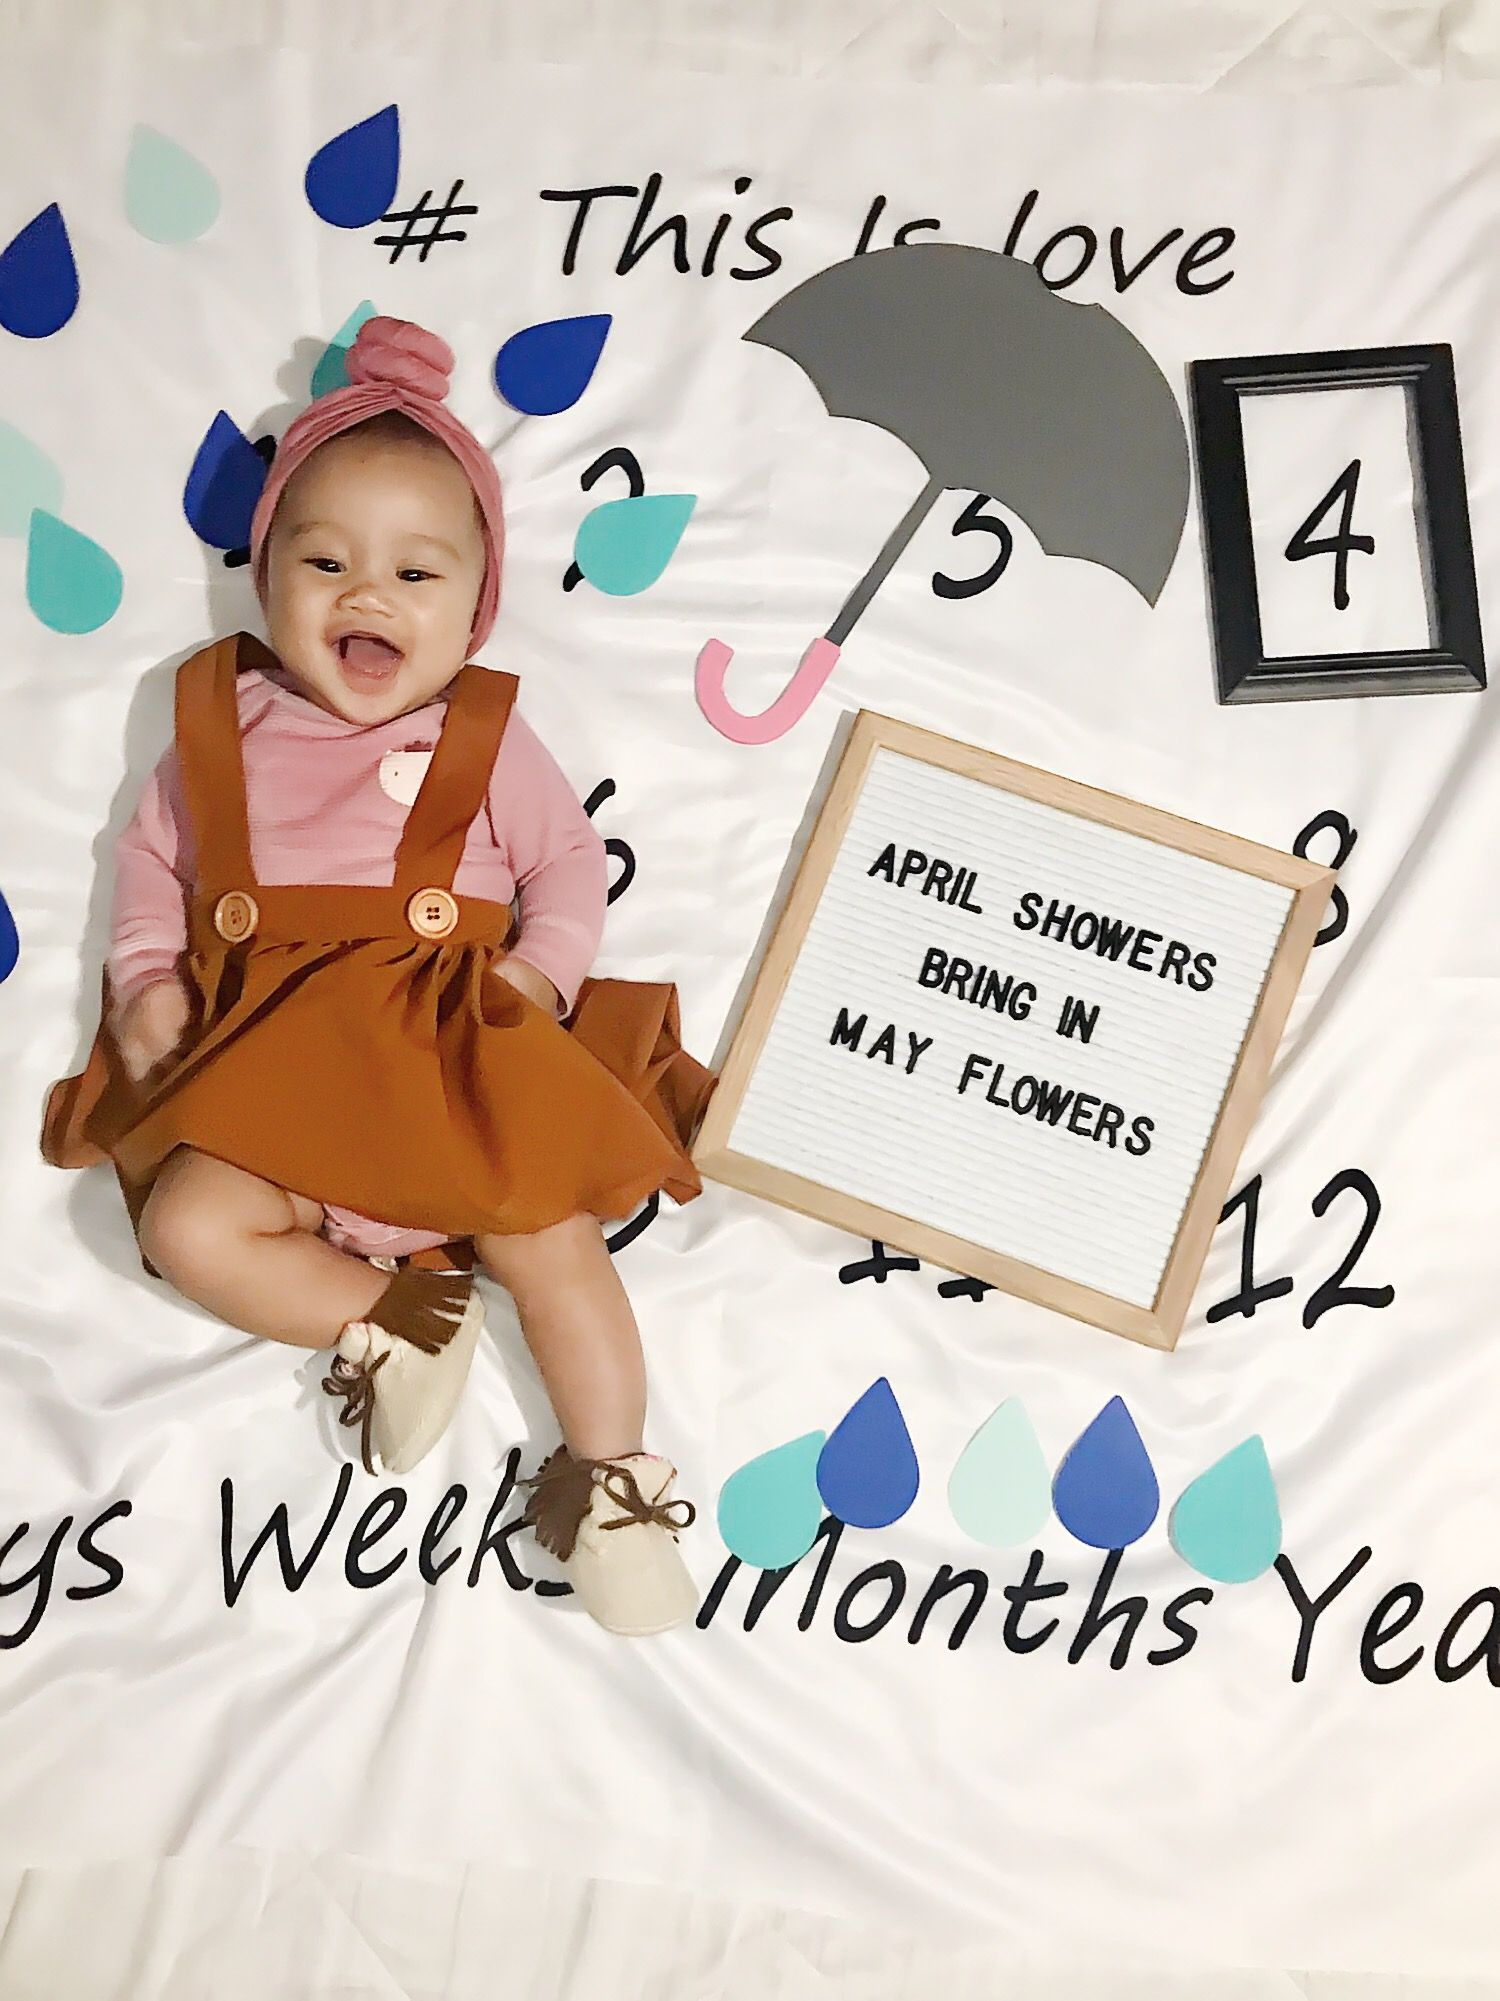 Happy 4 Months Baby Monthlyblanket Monthsary April Babyphotography Baby Photography April Showers Months